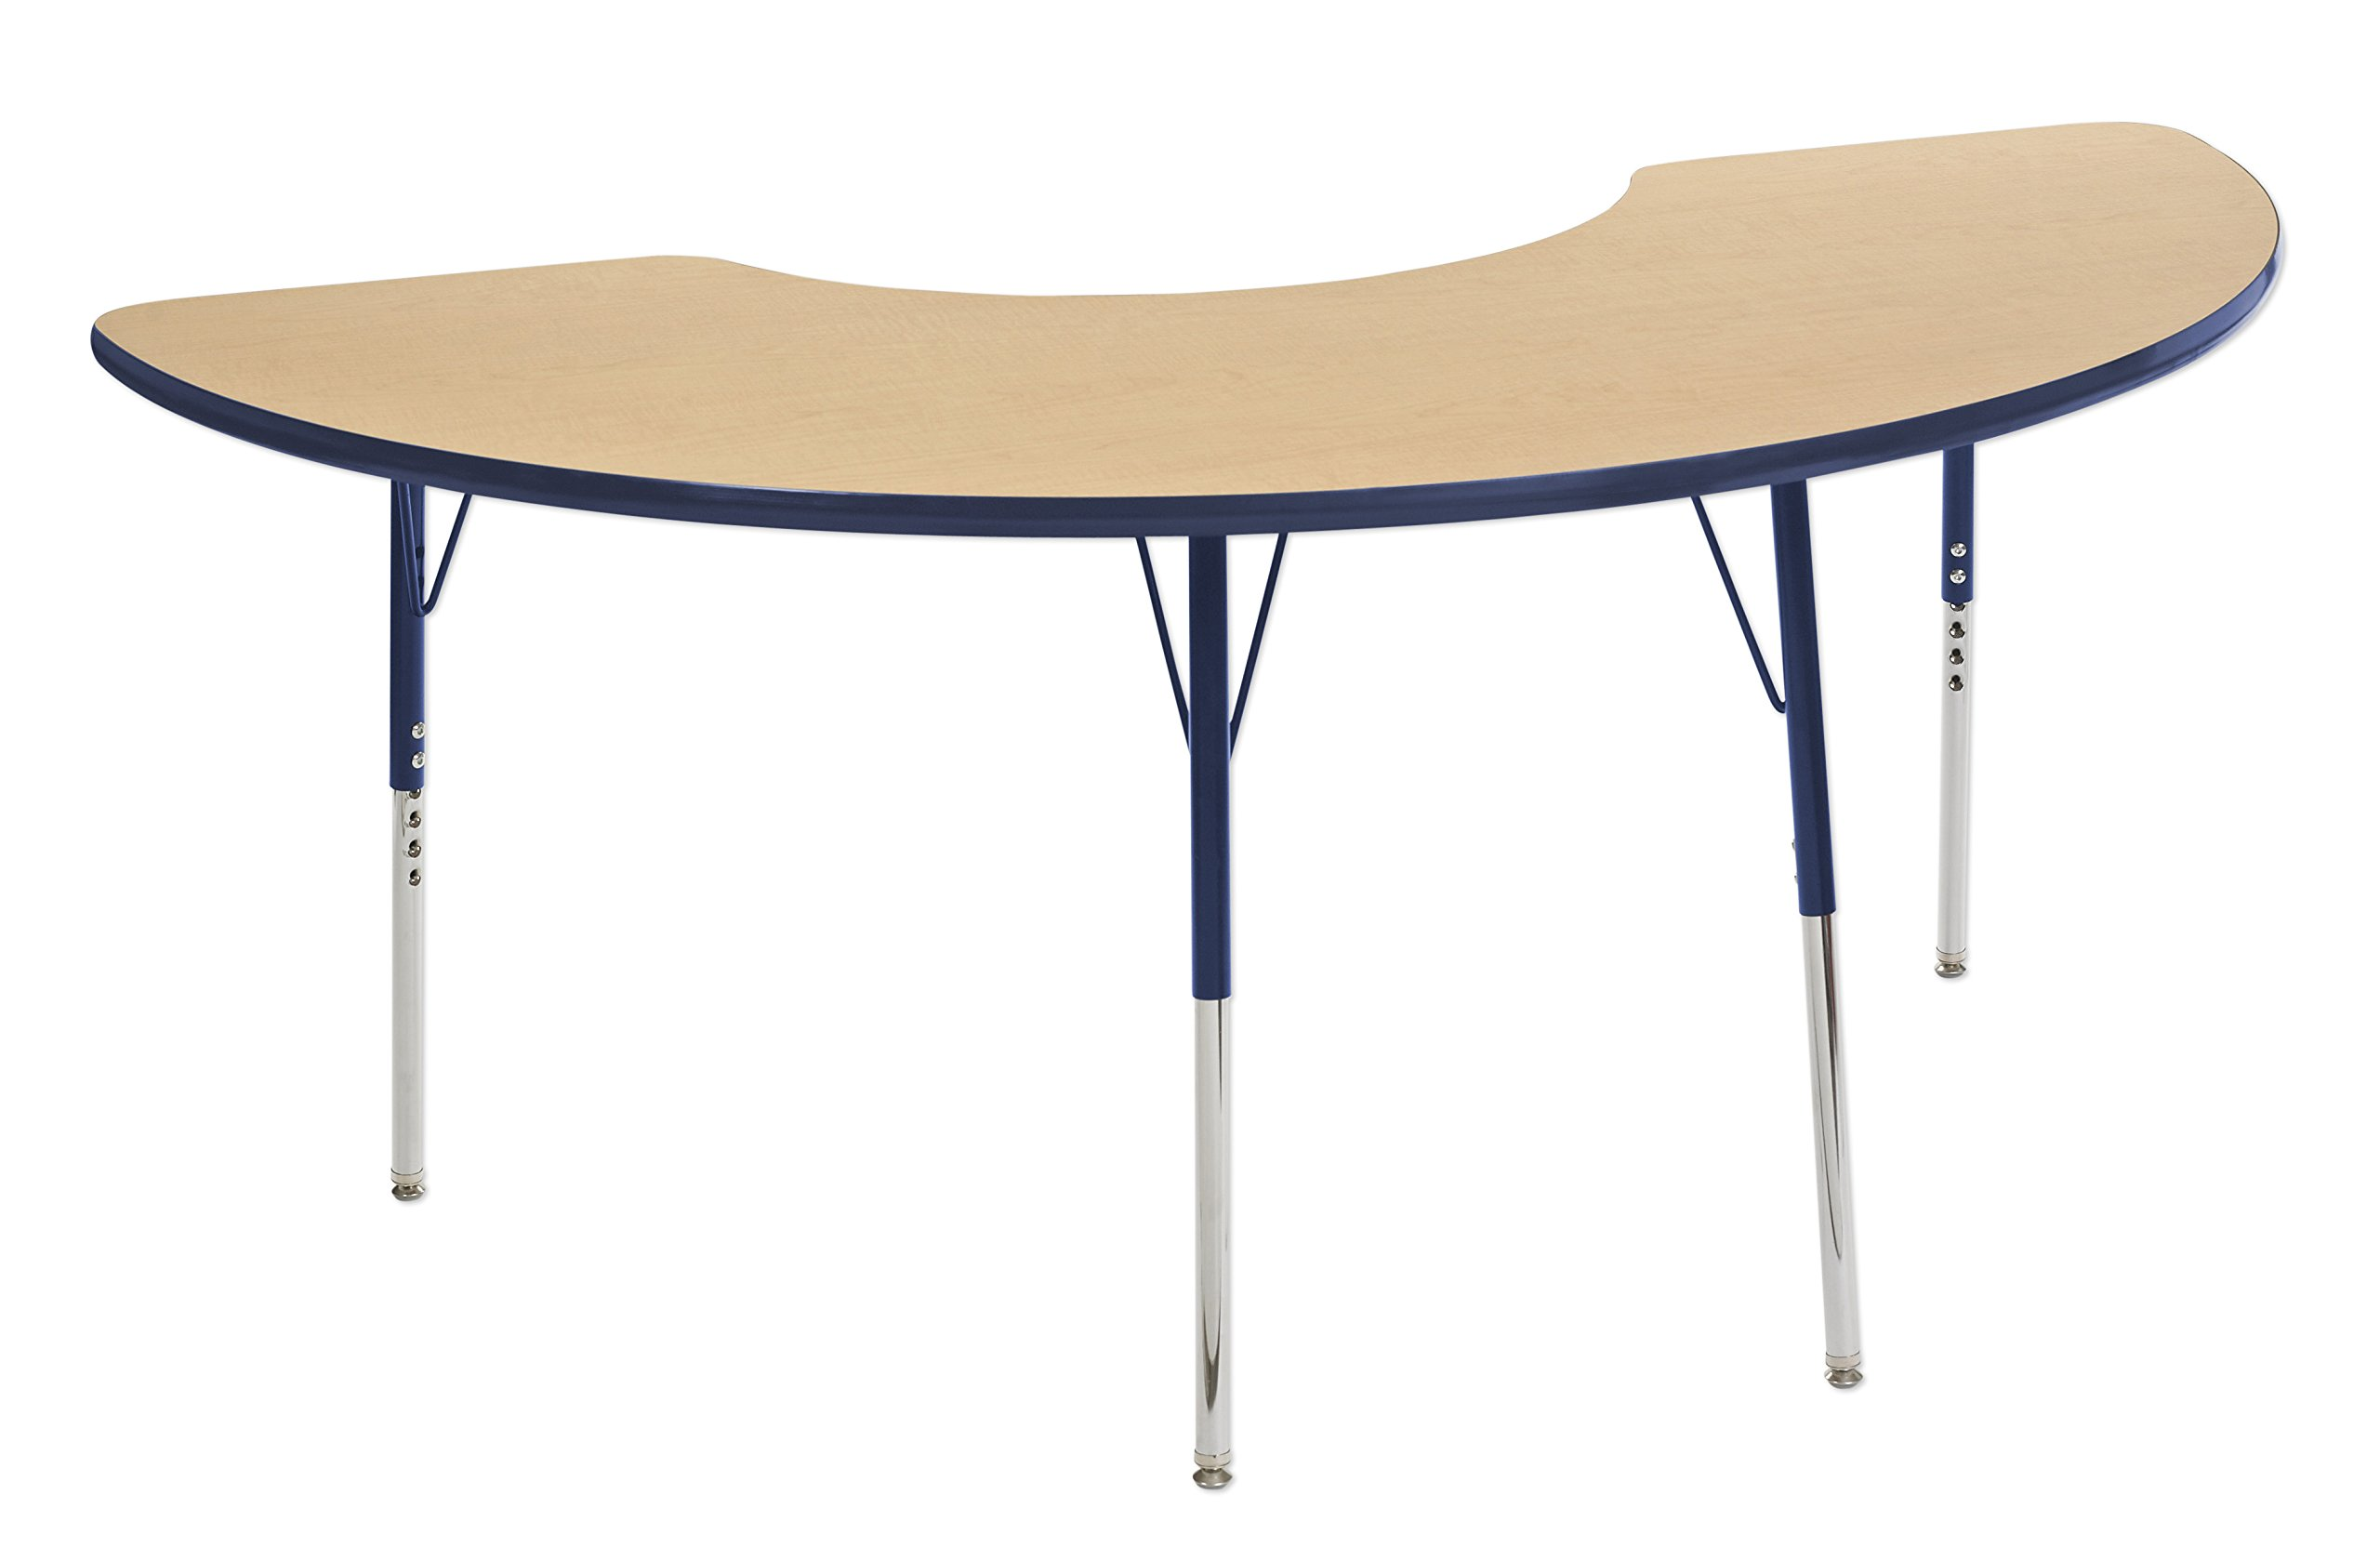 ECR4Kids 36'' x 72'' Half Moon Activty School Table, Toddler Legs w/Swivel Glides, Adjustable Height 15-23 inch (Maple/Navy)